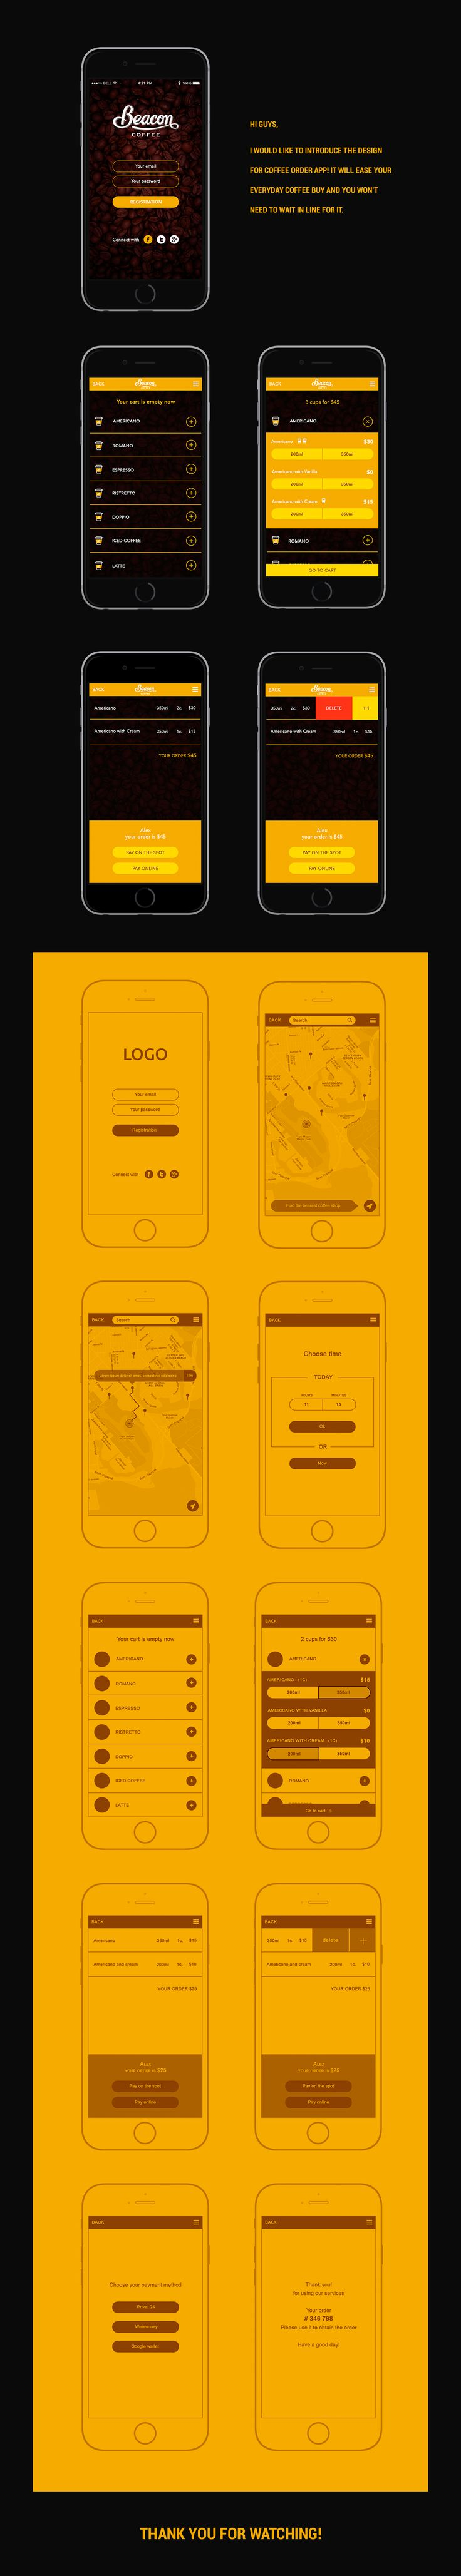 Hi guys, I would like to introduce the design for coffee order app! It will ease your everyday coffee buy and you won't need to wait in line for it.